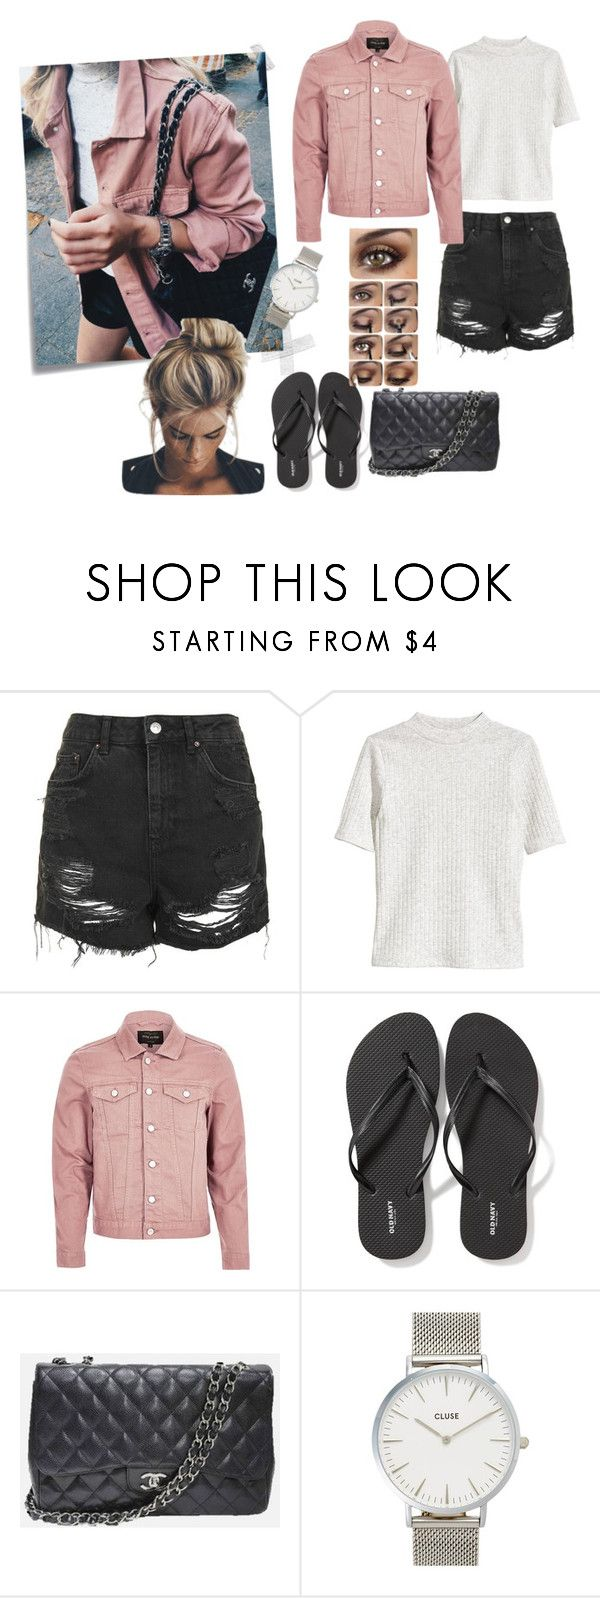 """Recreation"" by misstoffyy on Polyvore featuring Post-It, Topshop, River Island, Old Navy, Chanel and CLUSE"